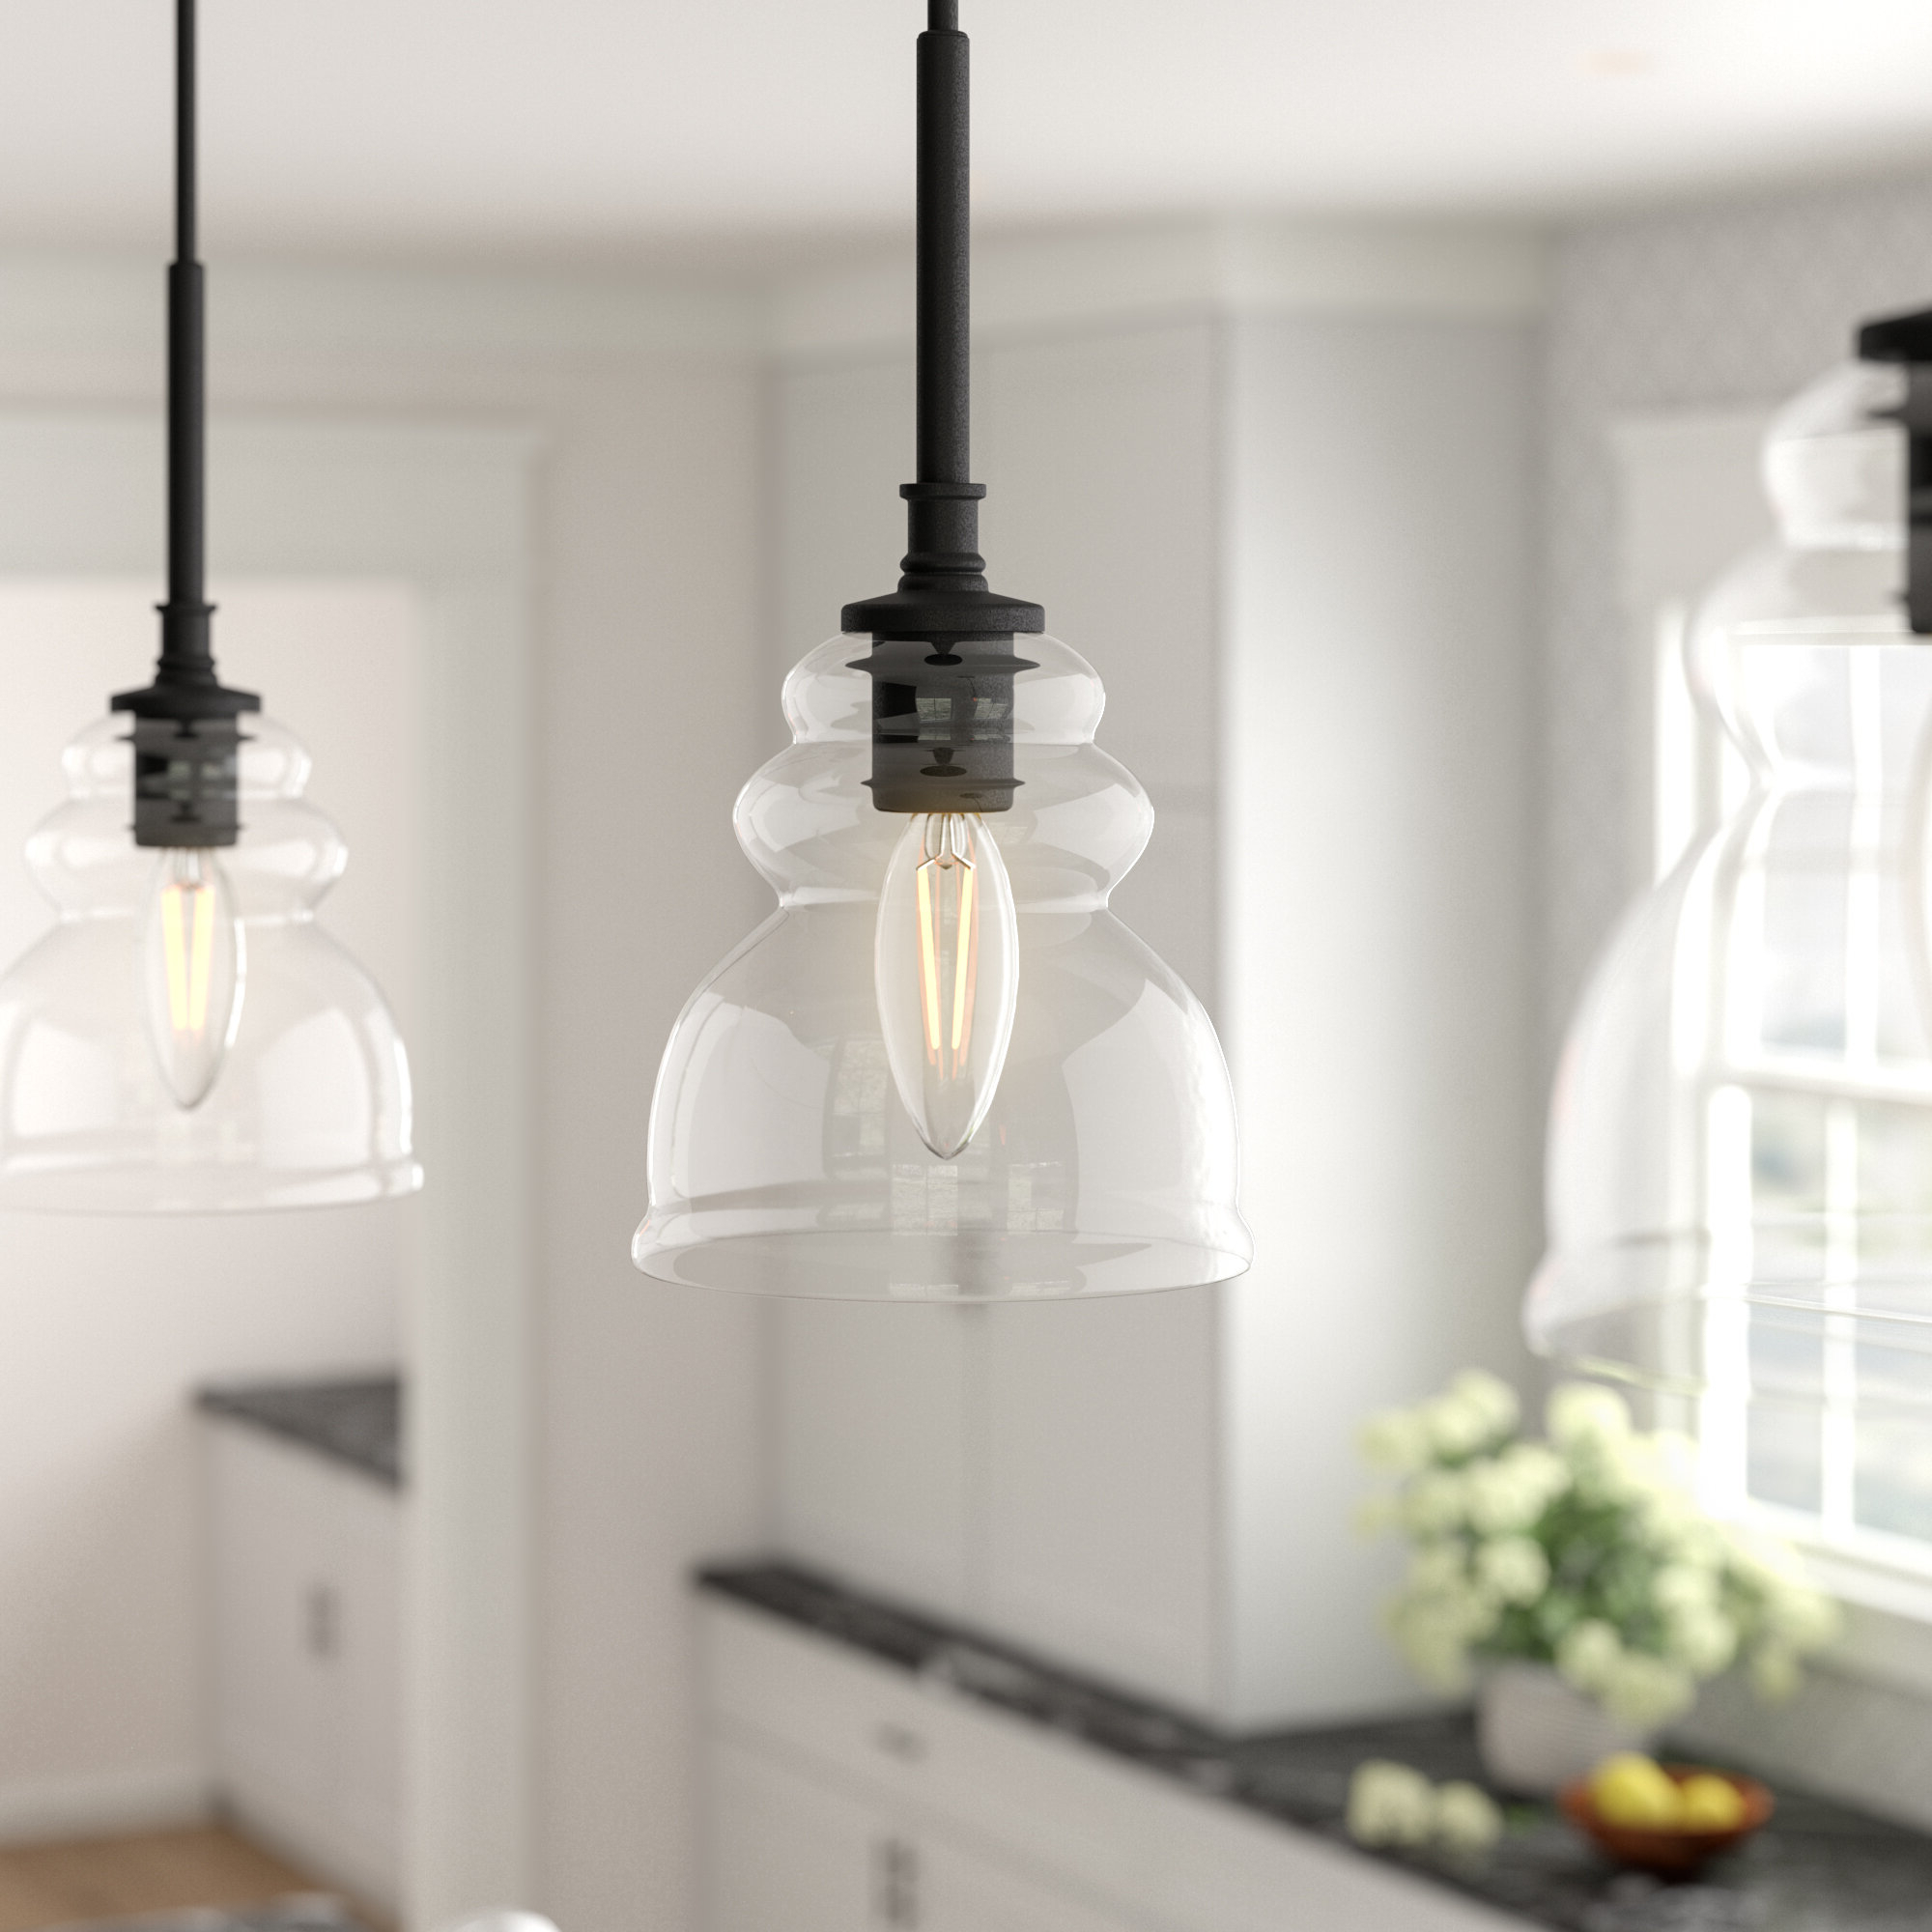 Akakios 1 Light Single Bell Pendants Throughout Newest Arla 1 Light Single Bell Pendant (View 4 of 20)